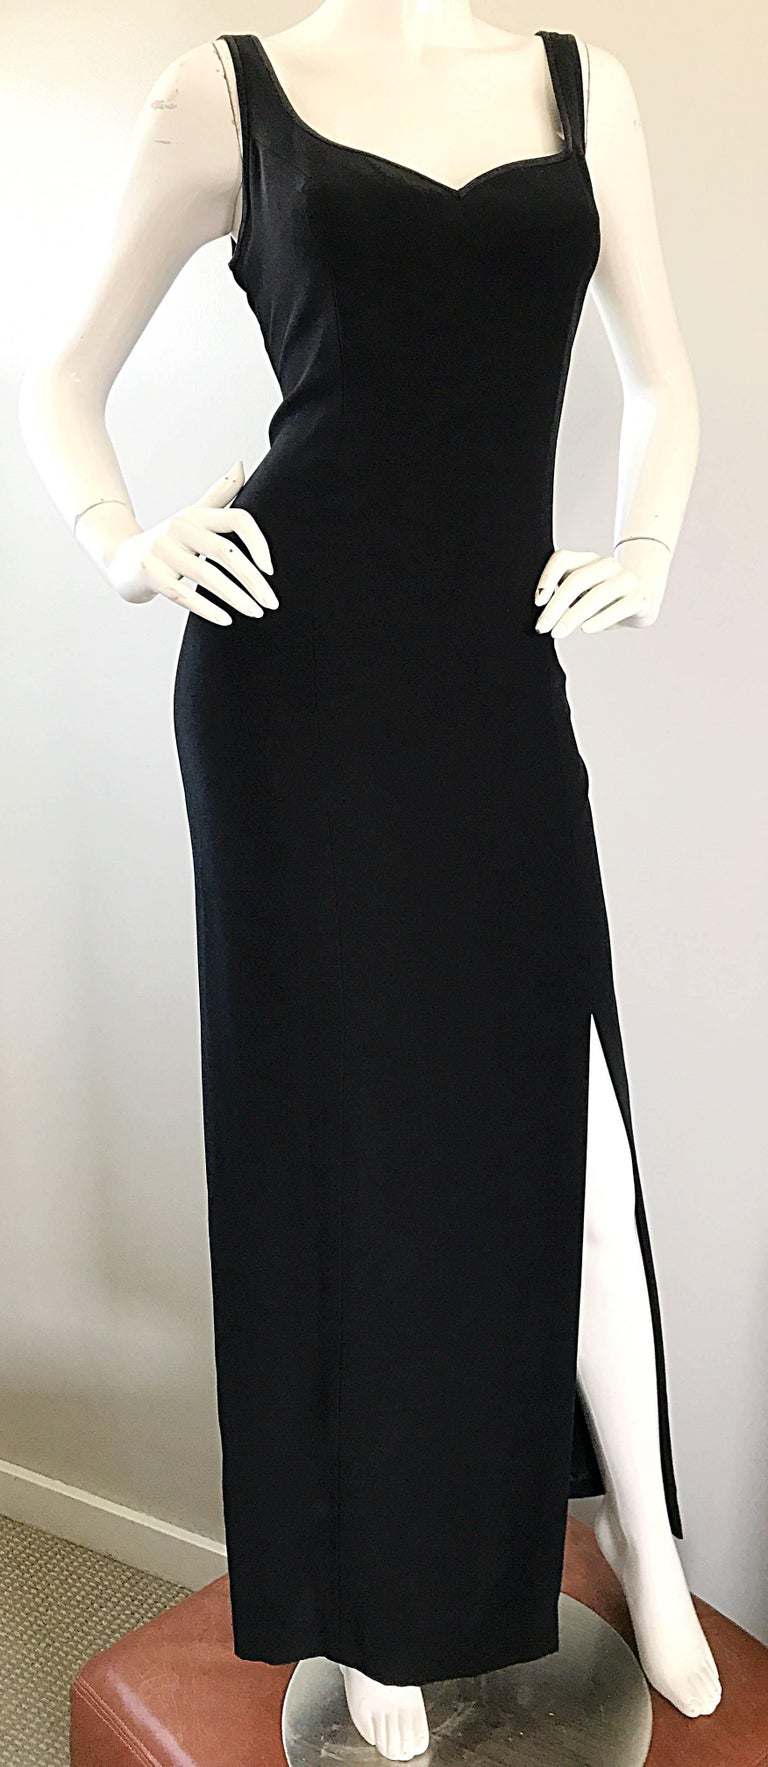 1990s Bob Mackie Size 10 Black Crepe Sexy 90s Vintage High Slit Evening Gown  For Sale 5